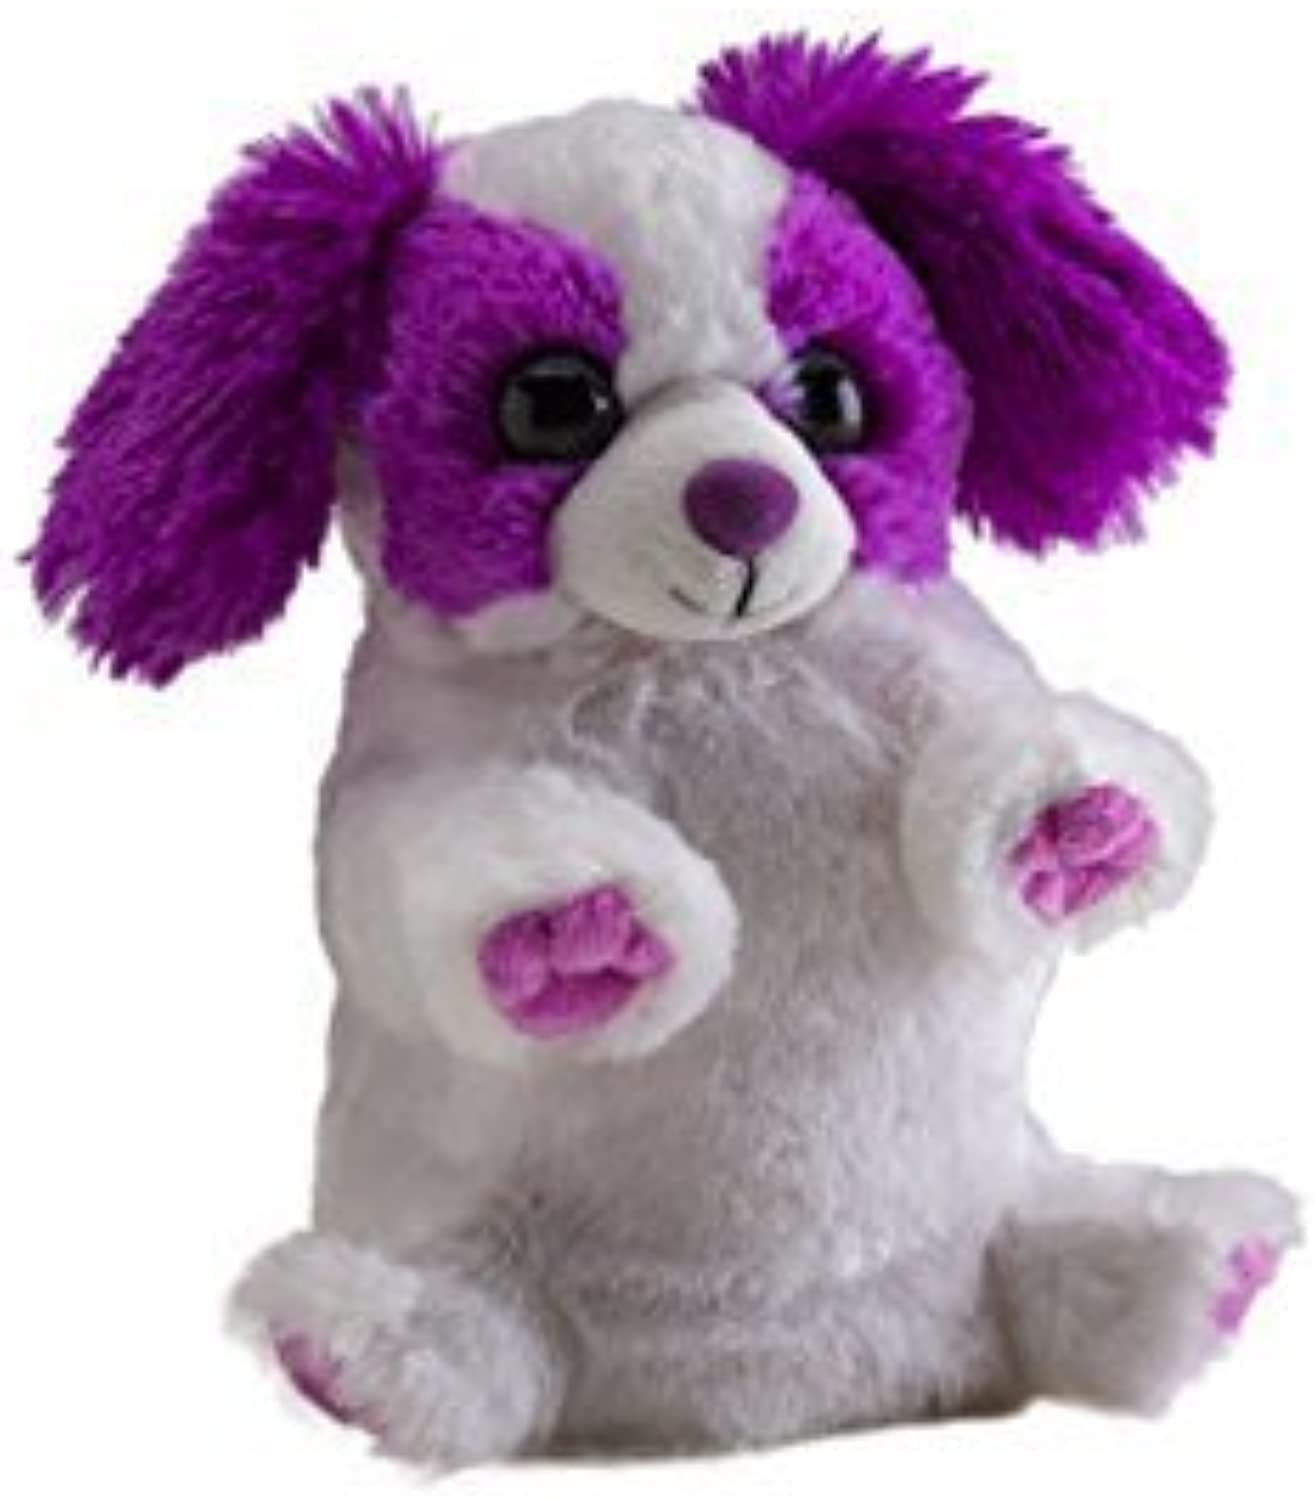 Plush By Puppy And Rooz Kisses Hugs Switch A Wild Republic wk0X8nOP